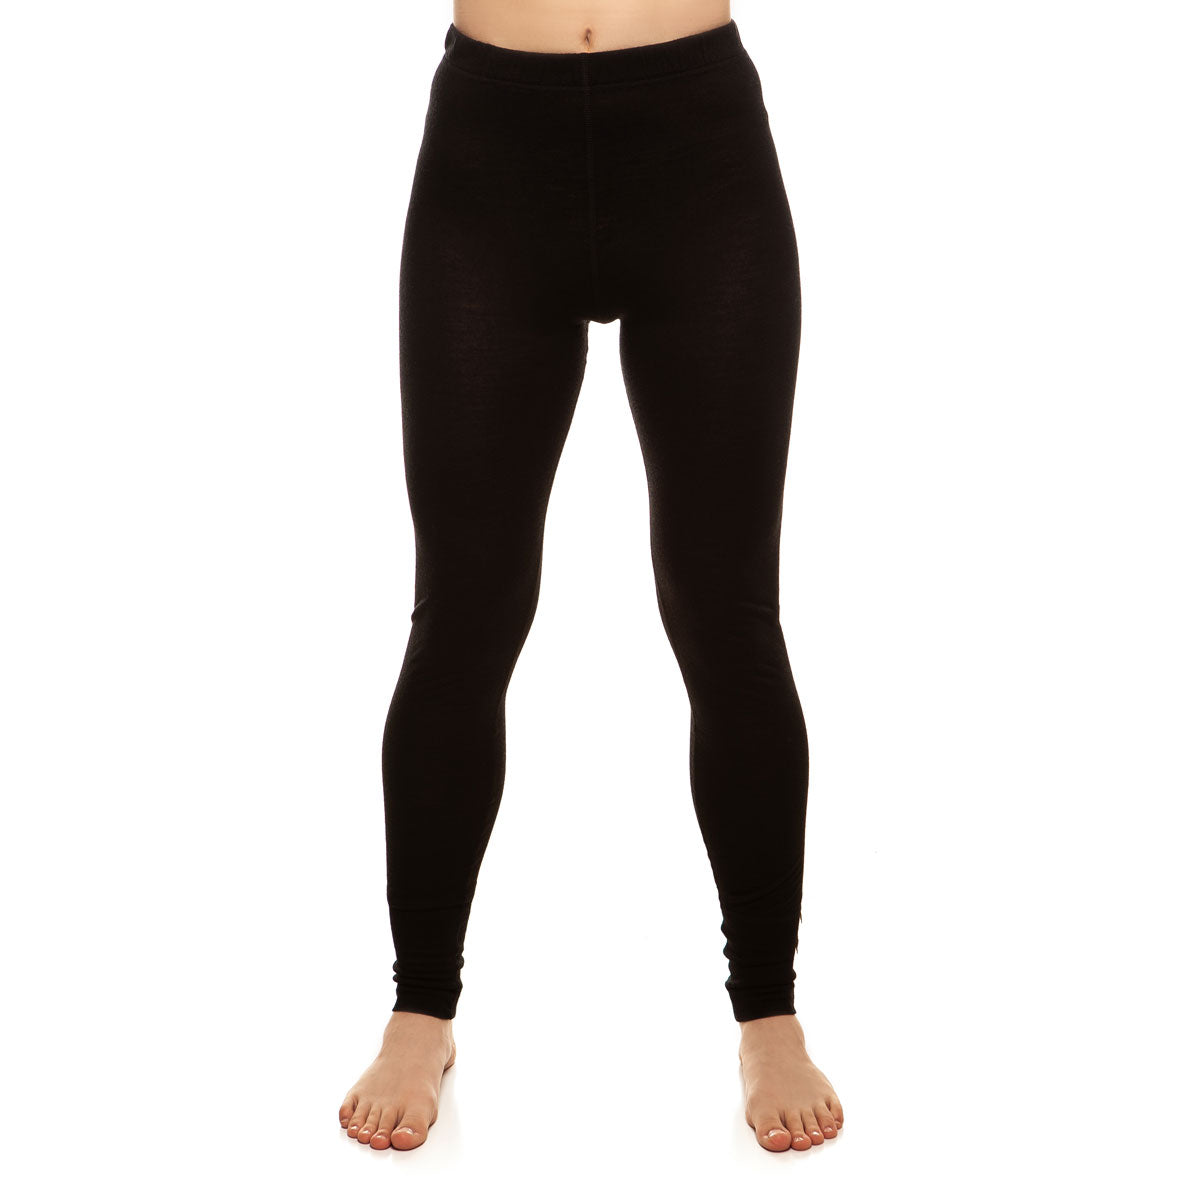 menique Women's Merino 160 Pants Black Color